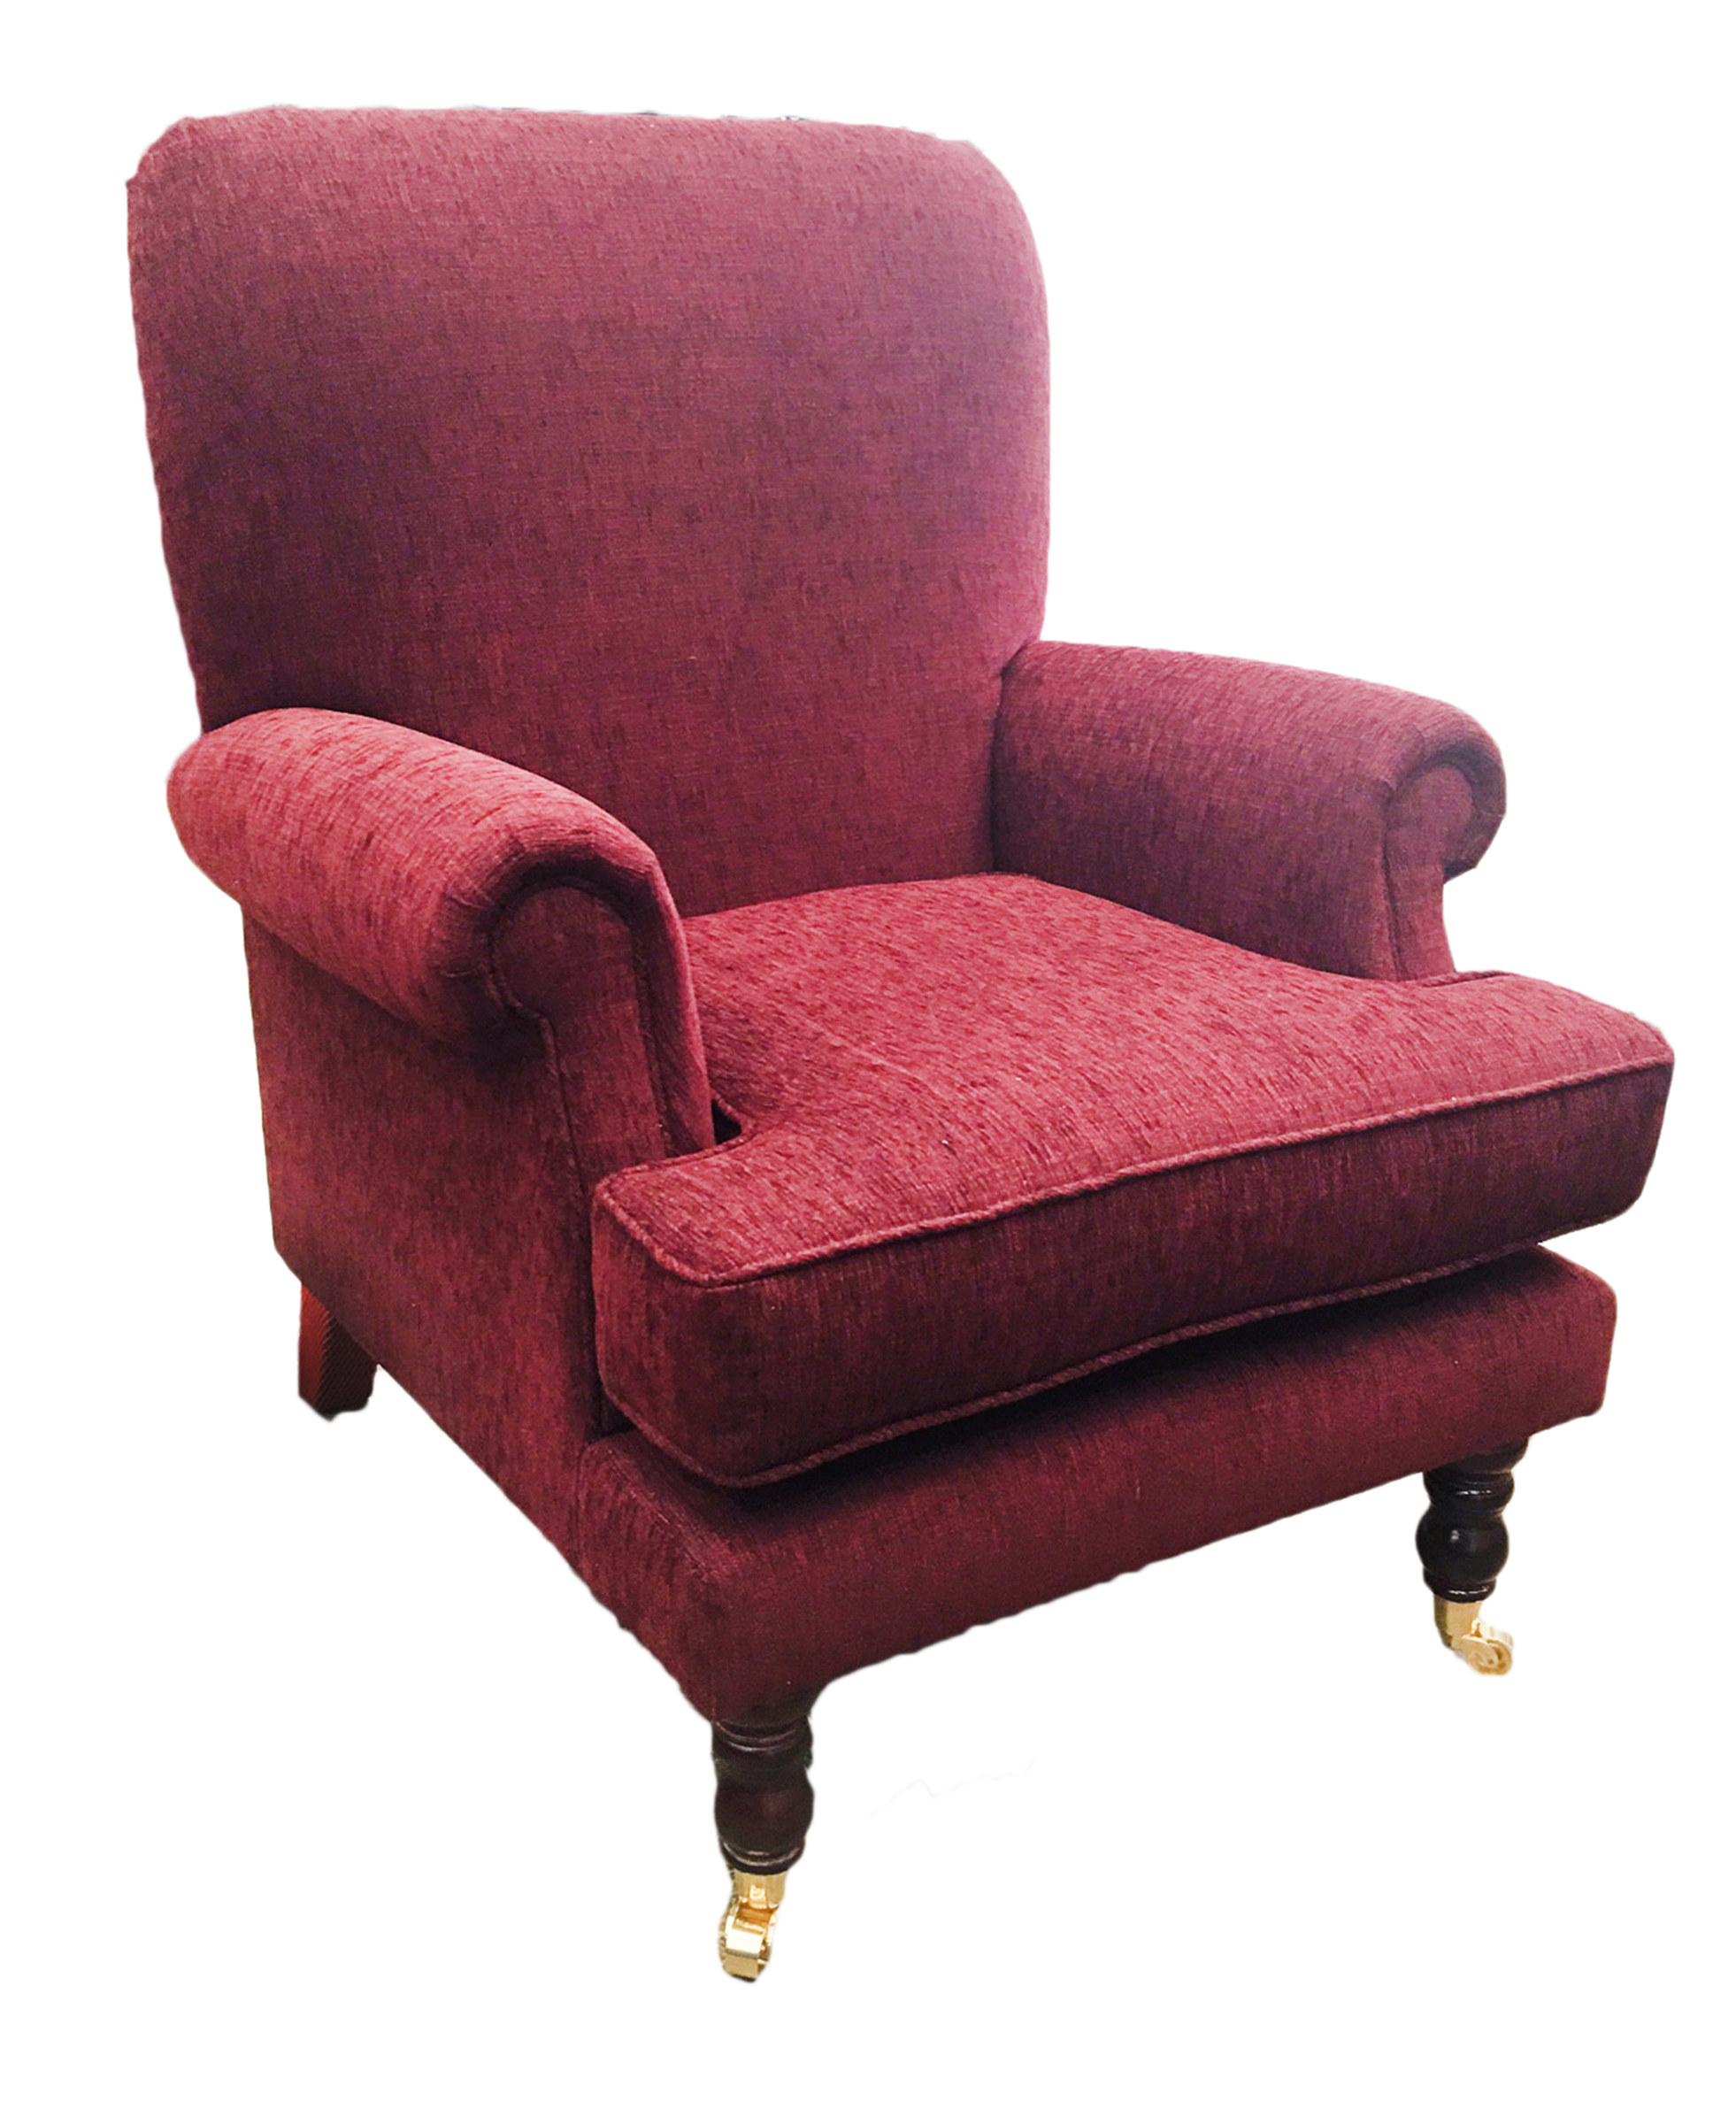 Cleary-Chair-in-Corrine-Bordeaux.-side